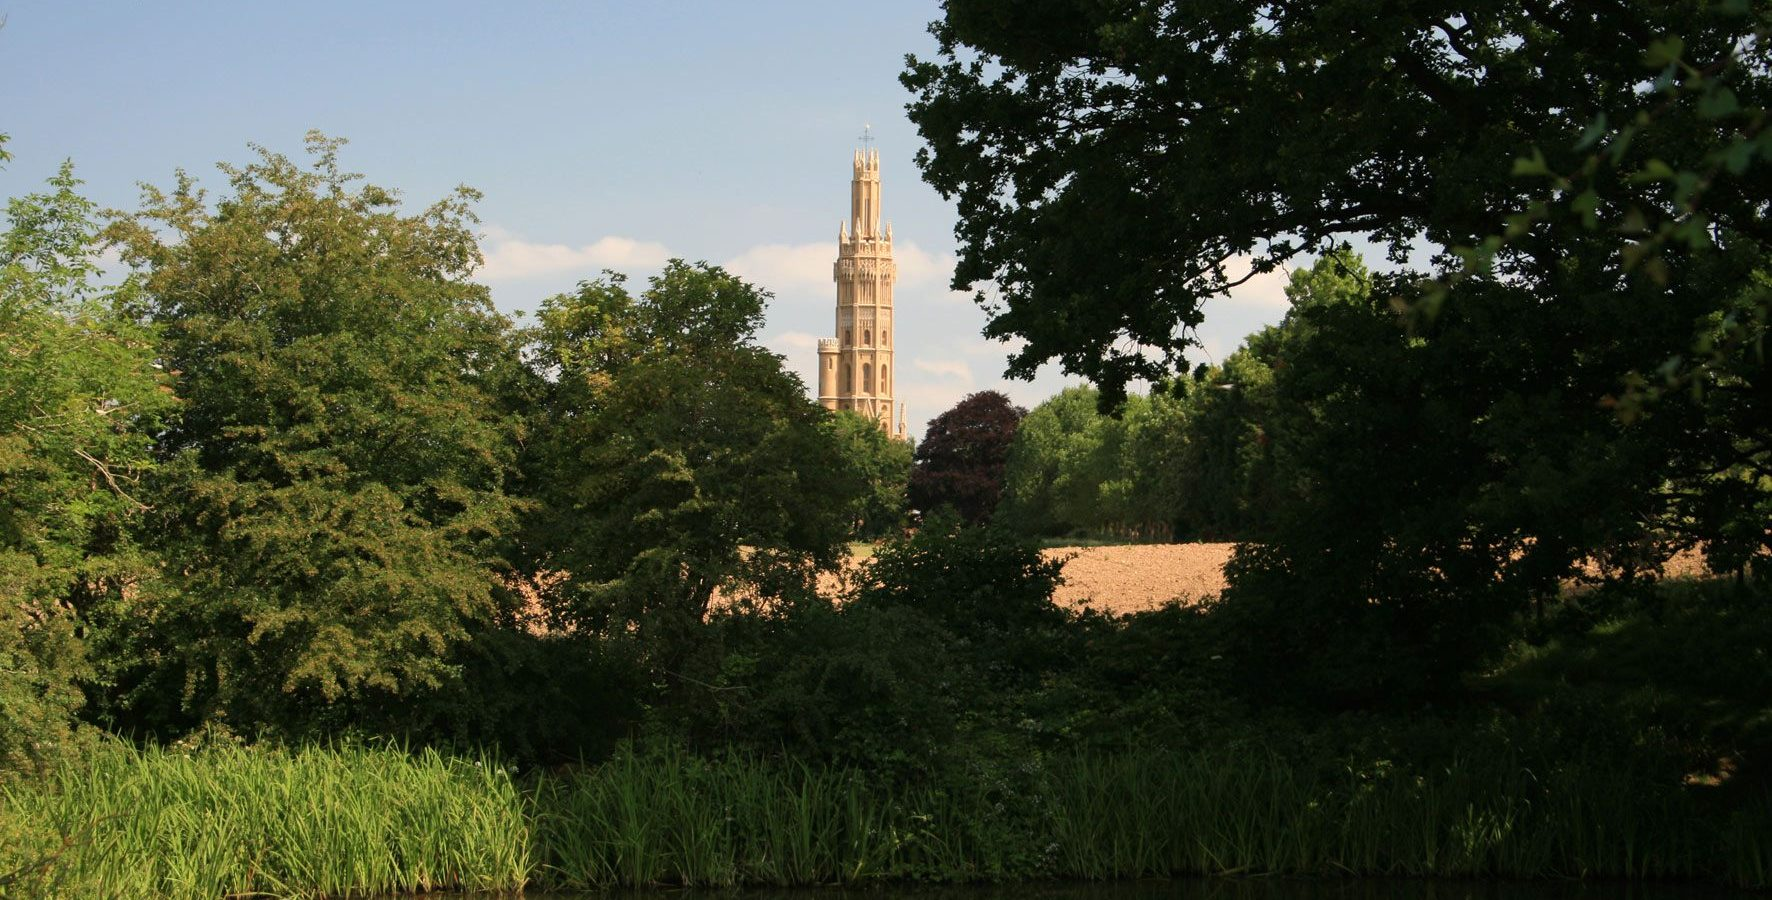 Hadlow Tower from Fishpond Landscape - copyright Roger Stanley